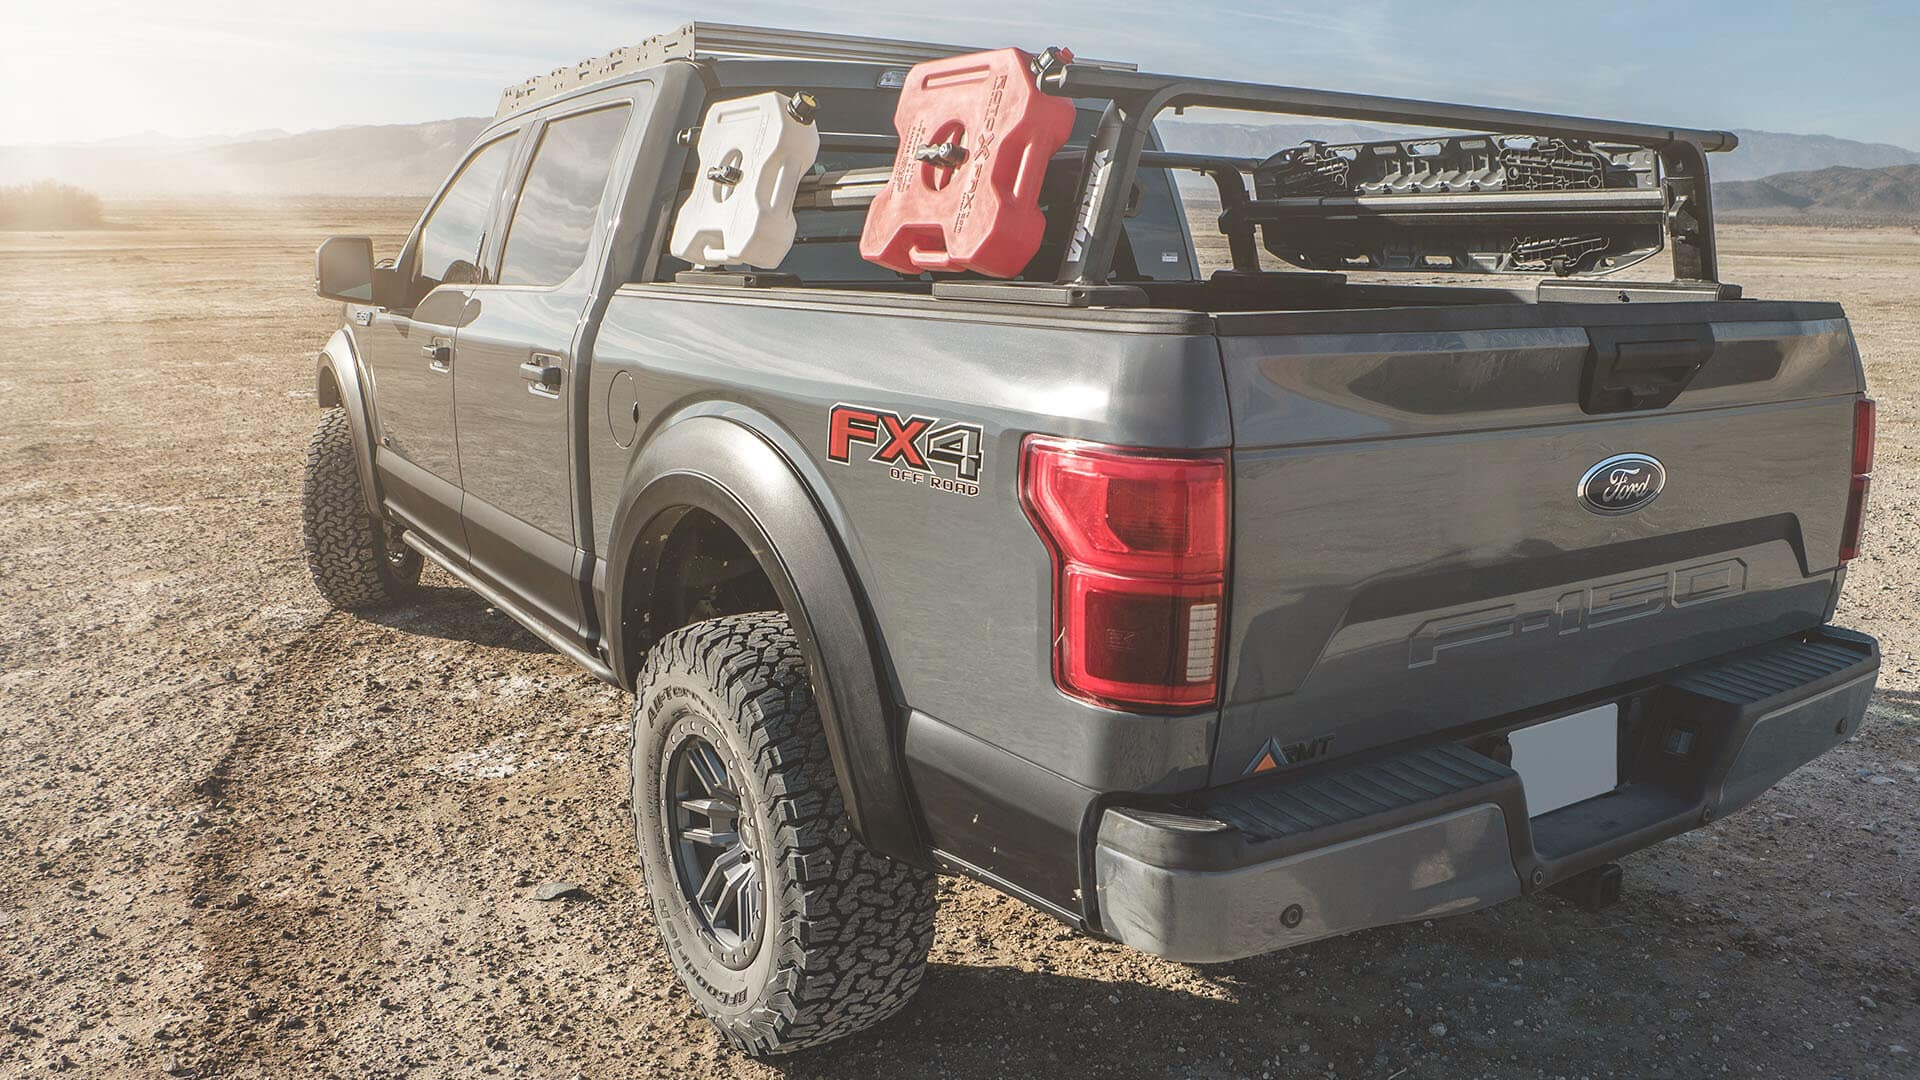 Sewell Ford RMT Overland Dealer in Midland, Texas F-150 Magnetic Grey Rear End